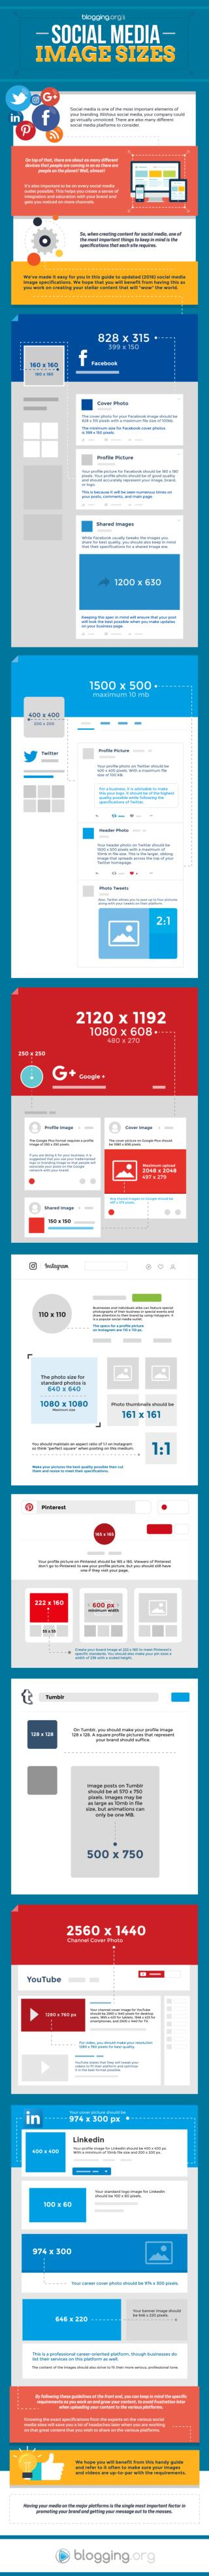 Facebook, Twitter, LinkedIn and Social Media Image Sizes